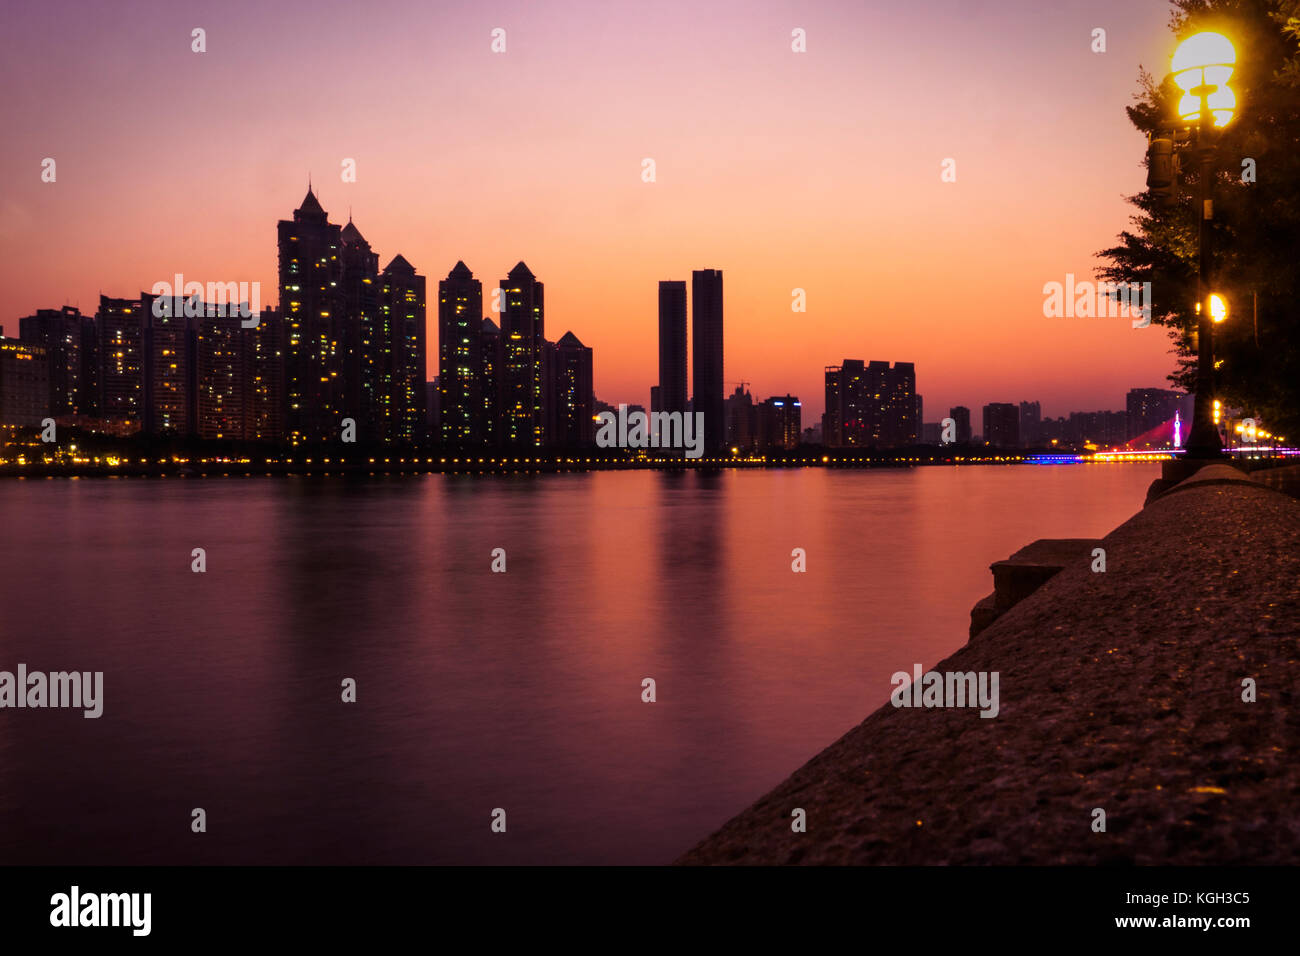 Dusk falls over the Pearl River and the City of Guangzhou, capital of Guangdong province. Luxury apartments are - Stock Image